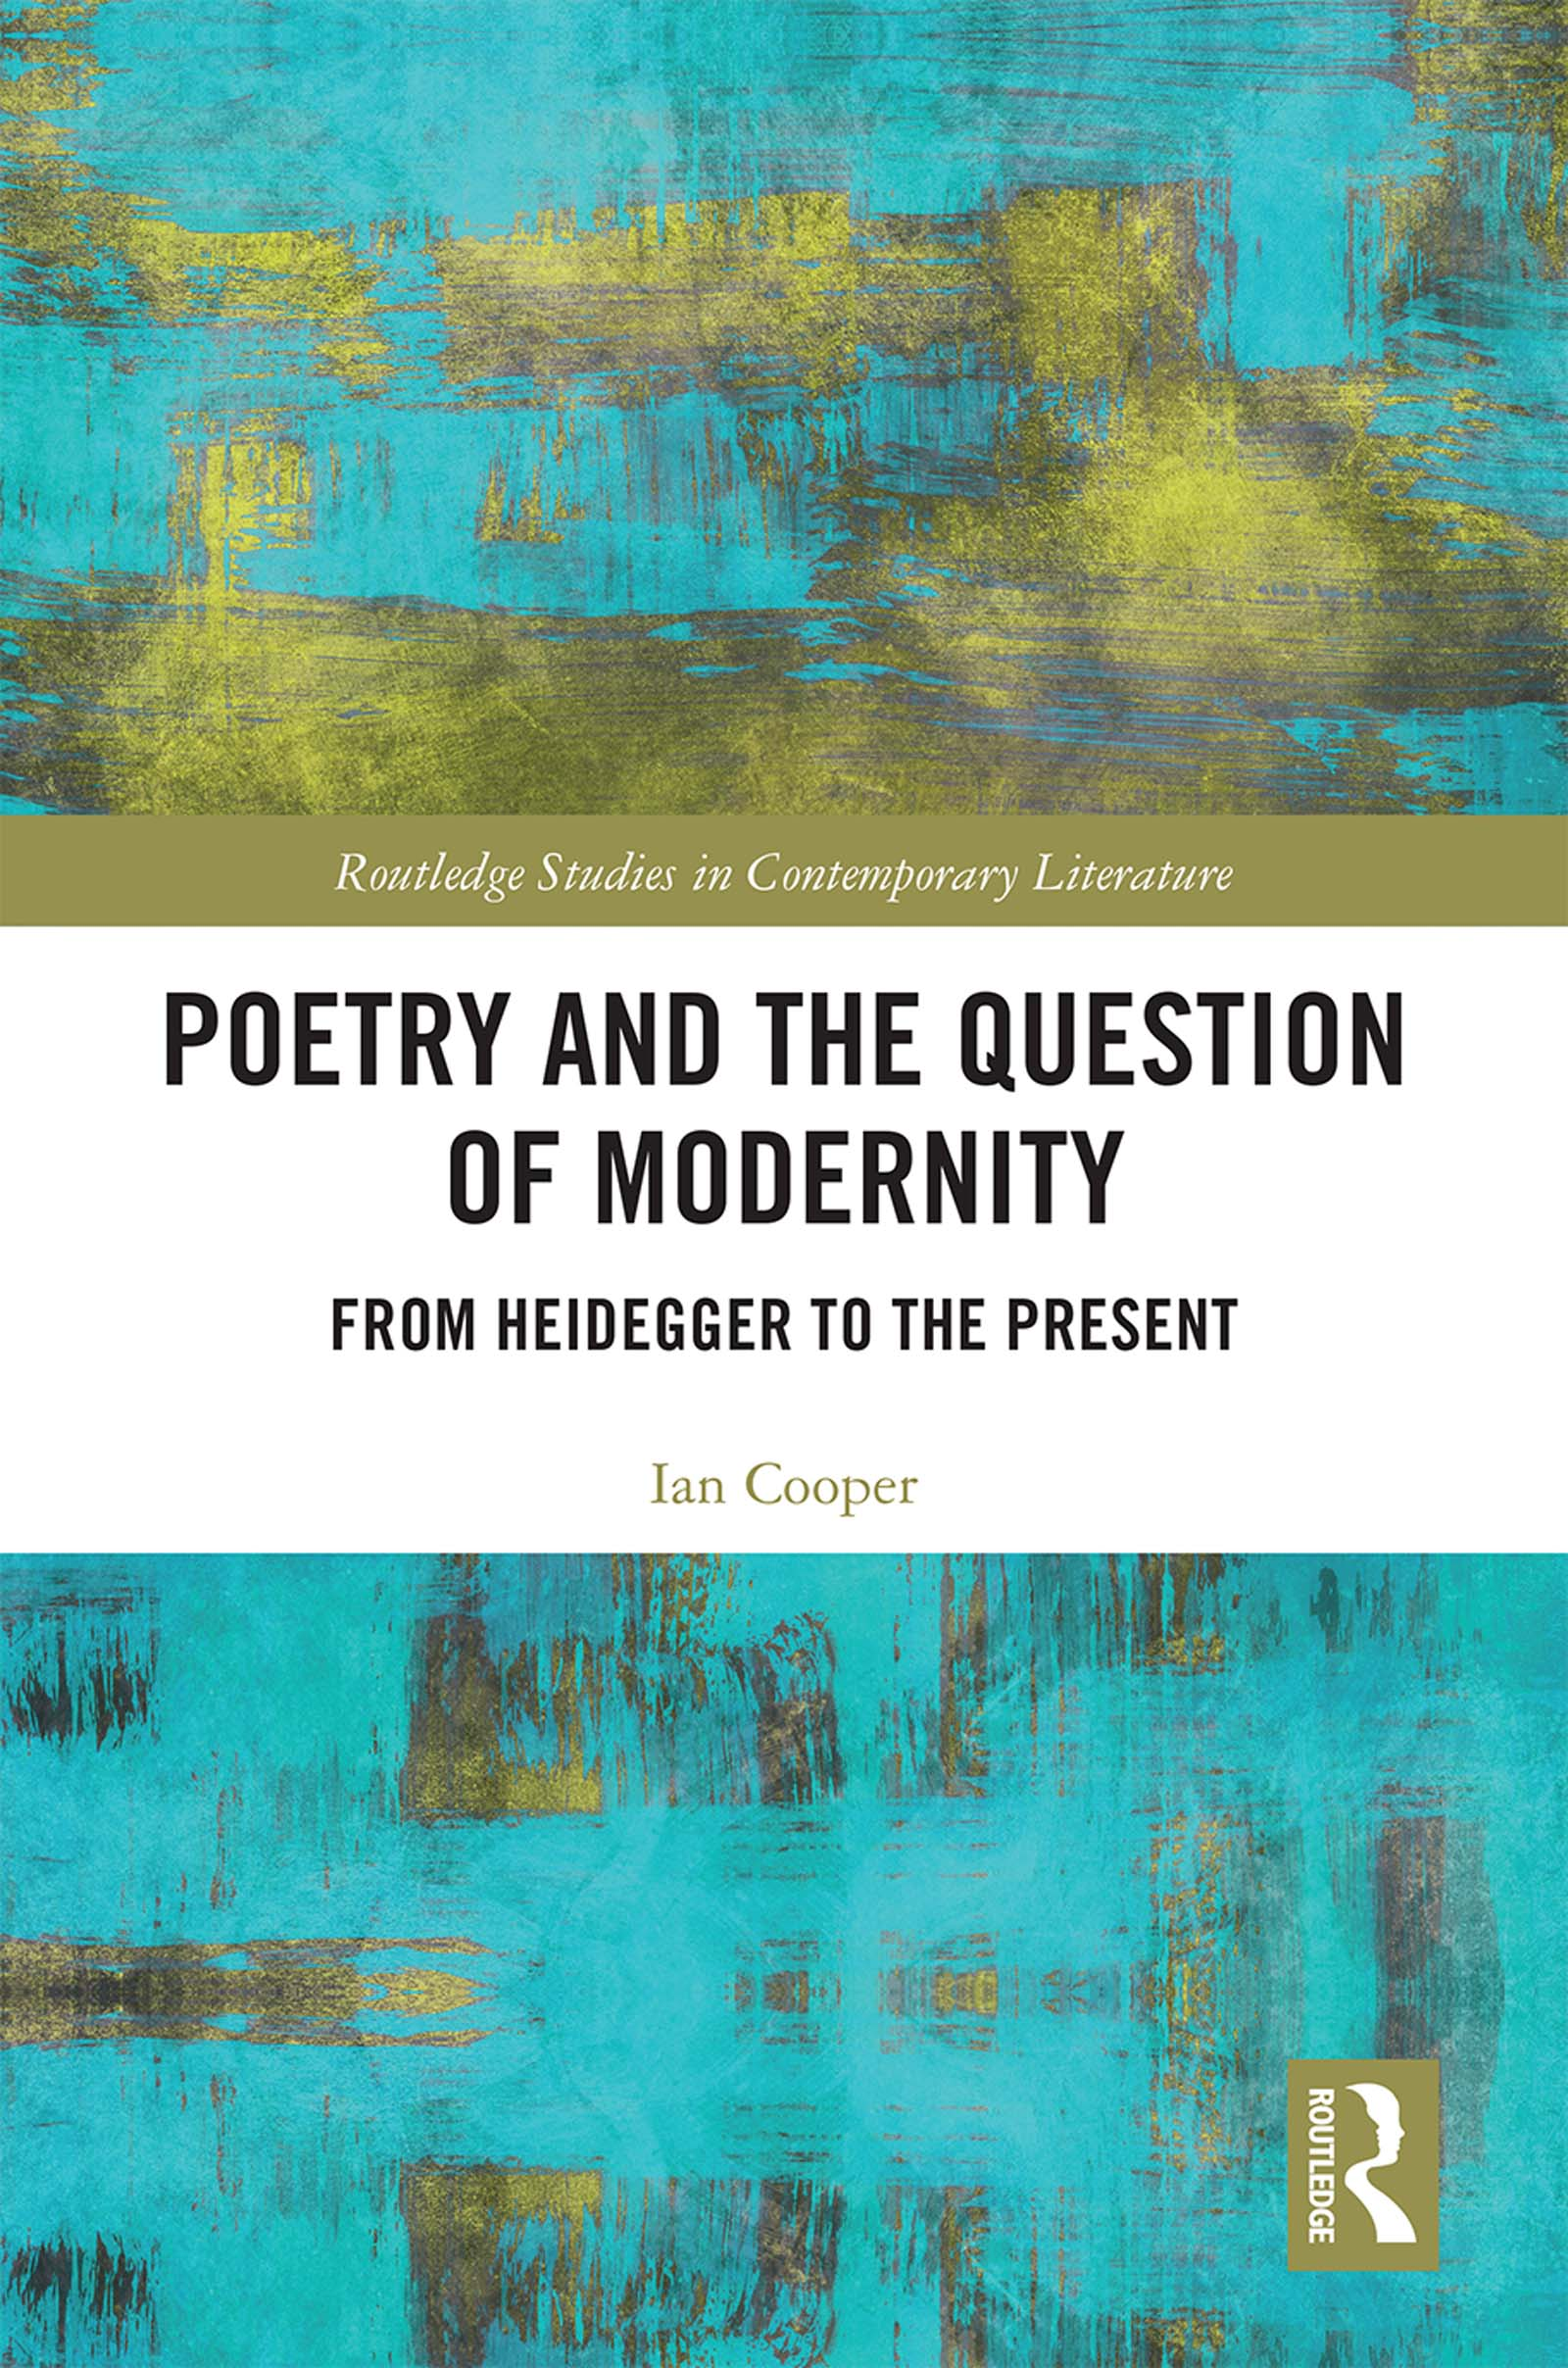 Poetry and the Question of Modernity: From Heidegger to the Present book cover